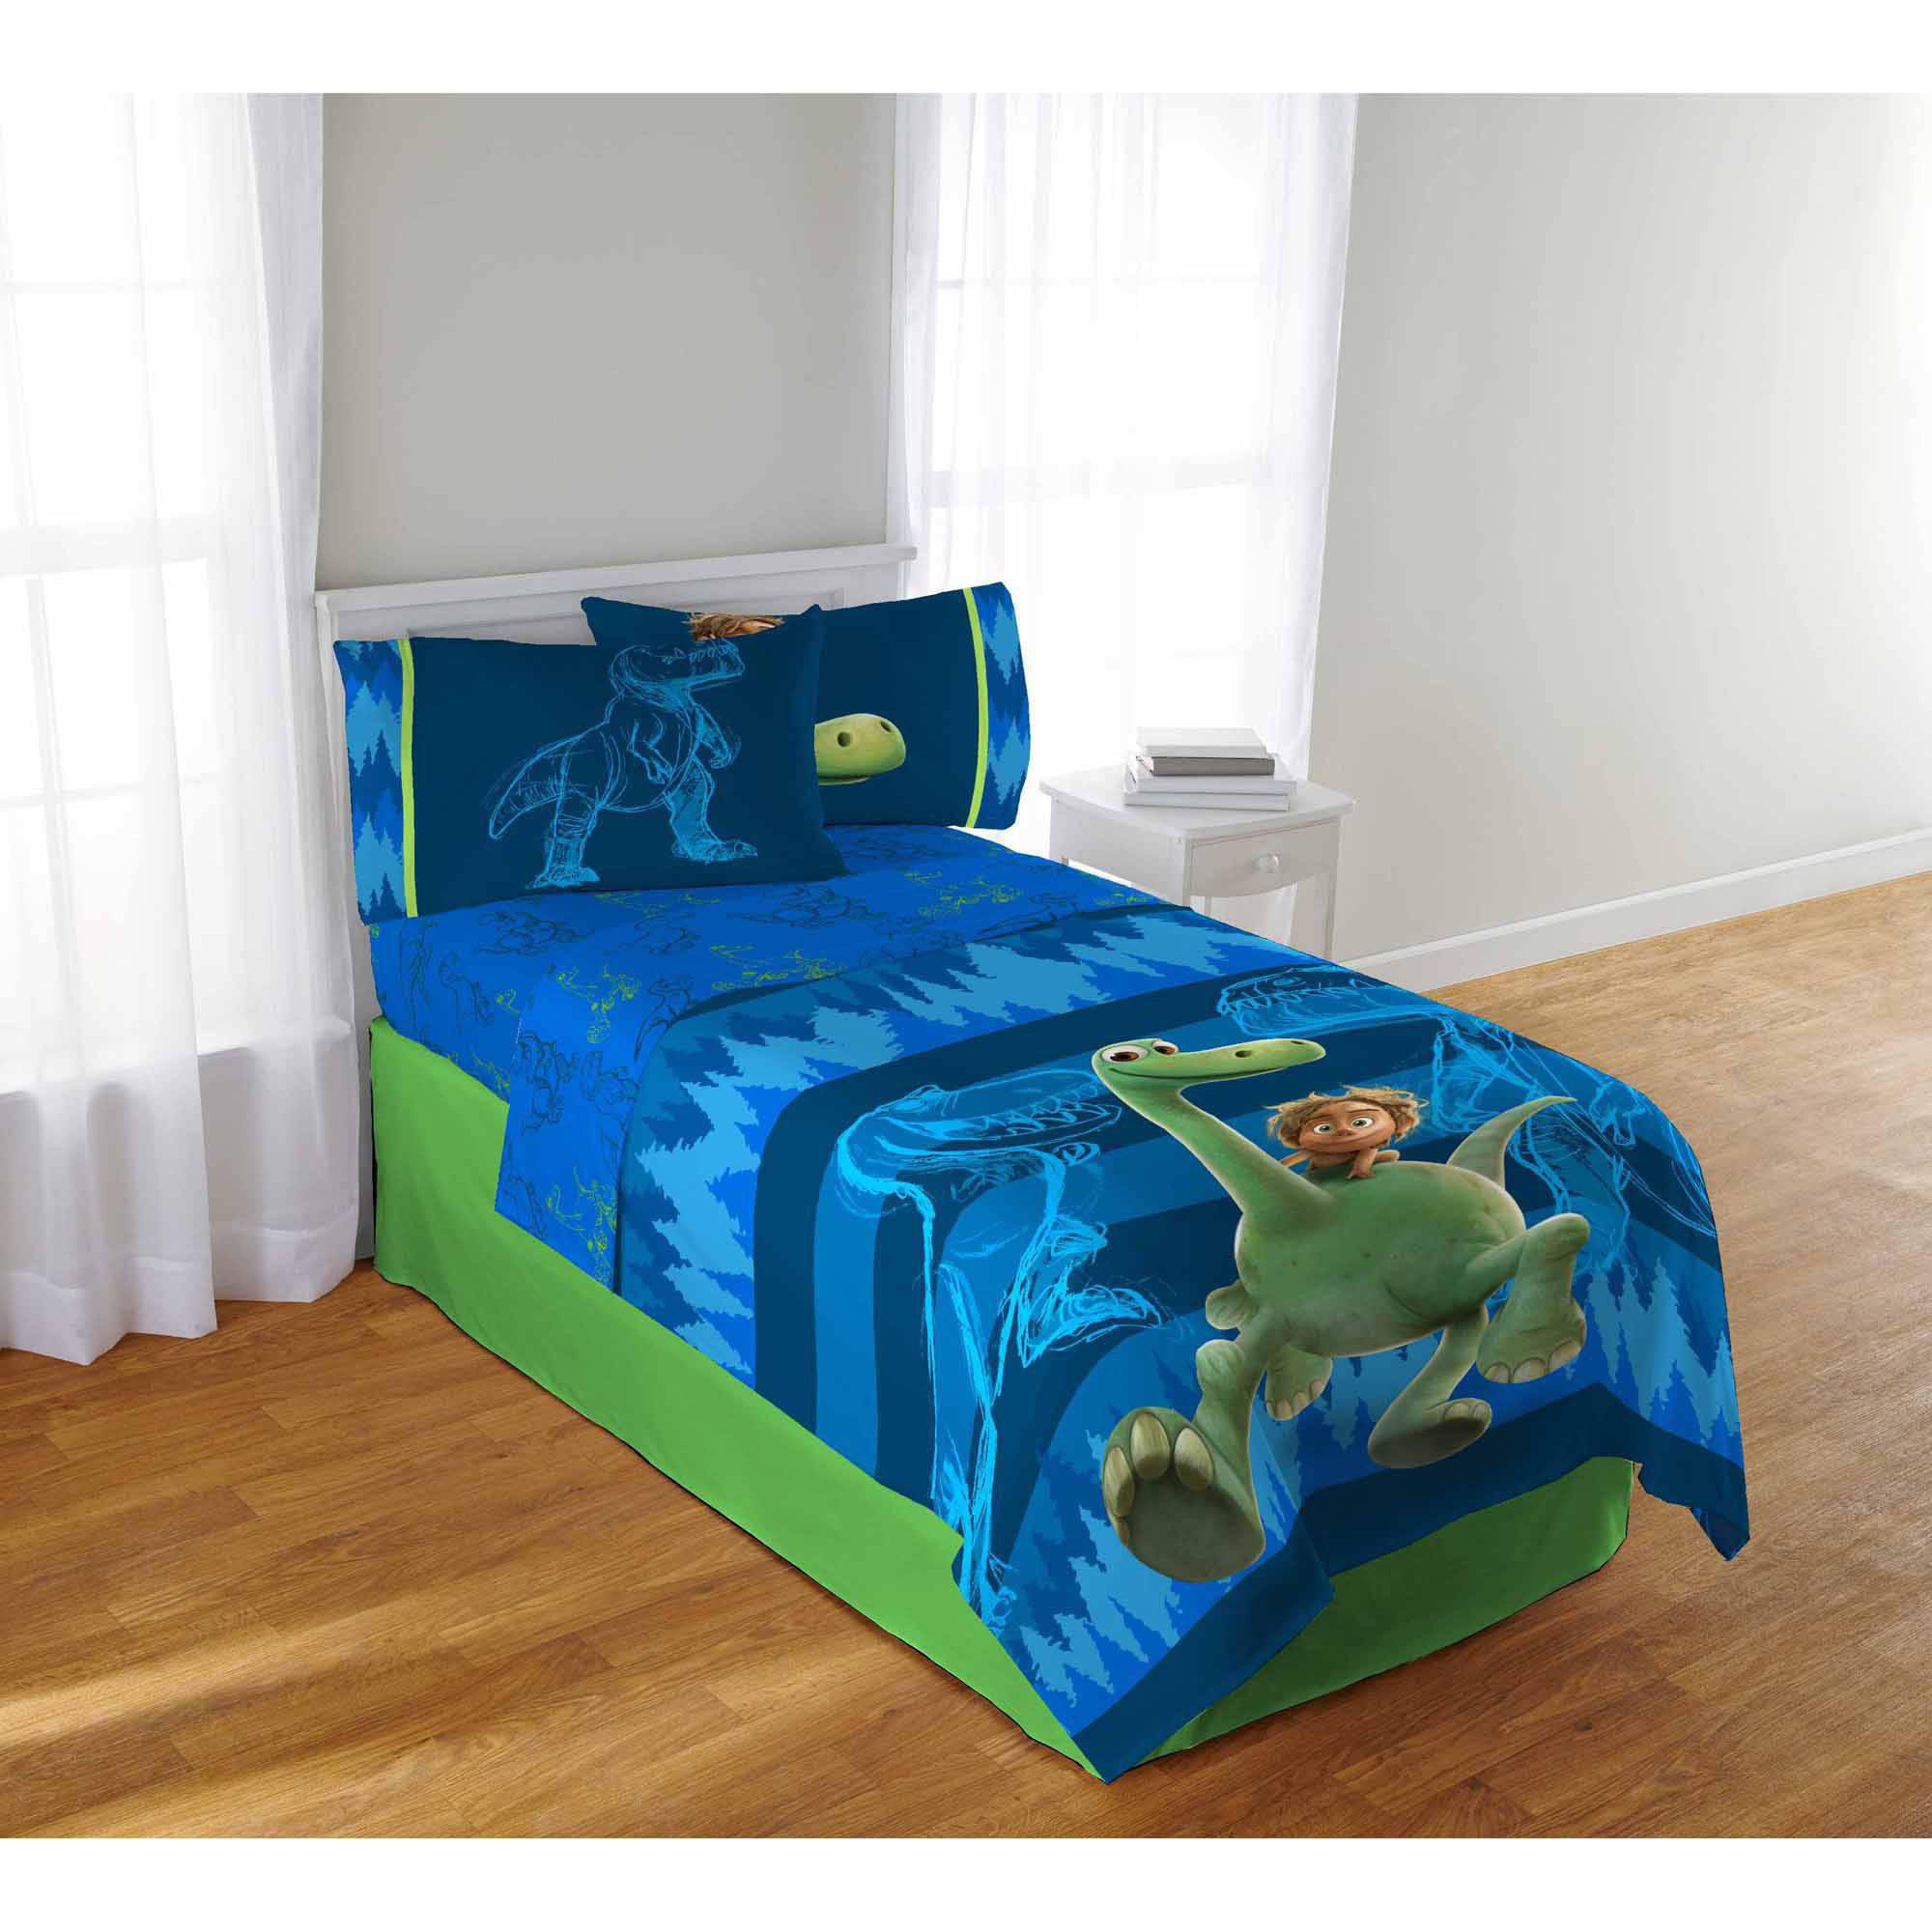 dinosaur bedroom set the dino bedding sheet set walmart 11431